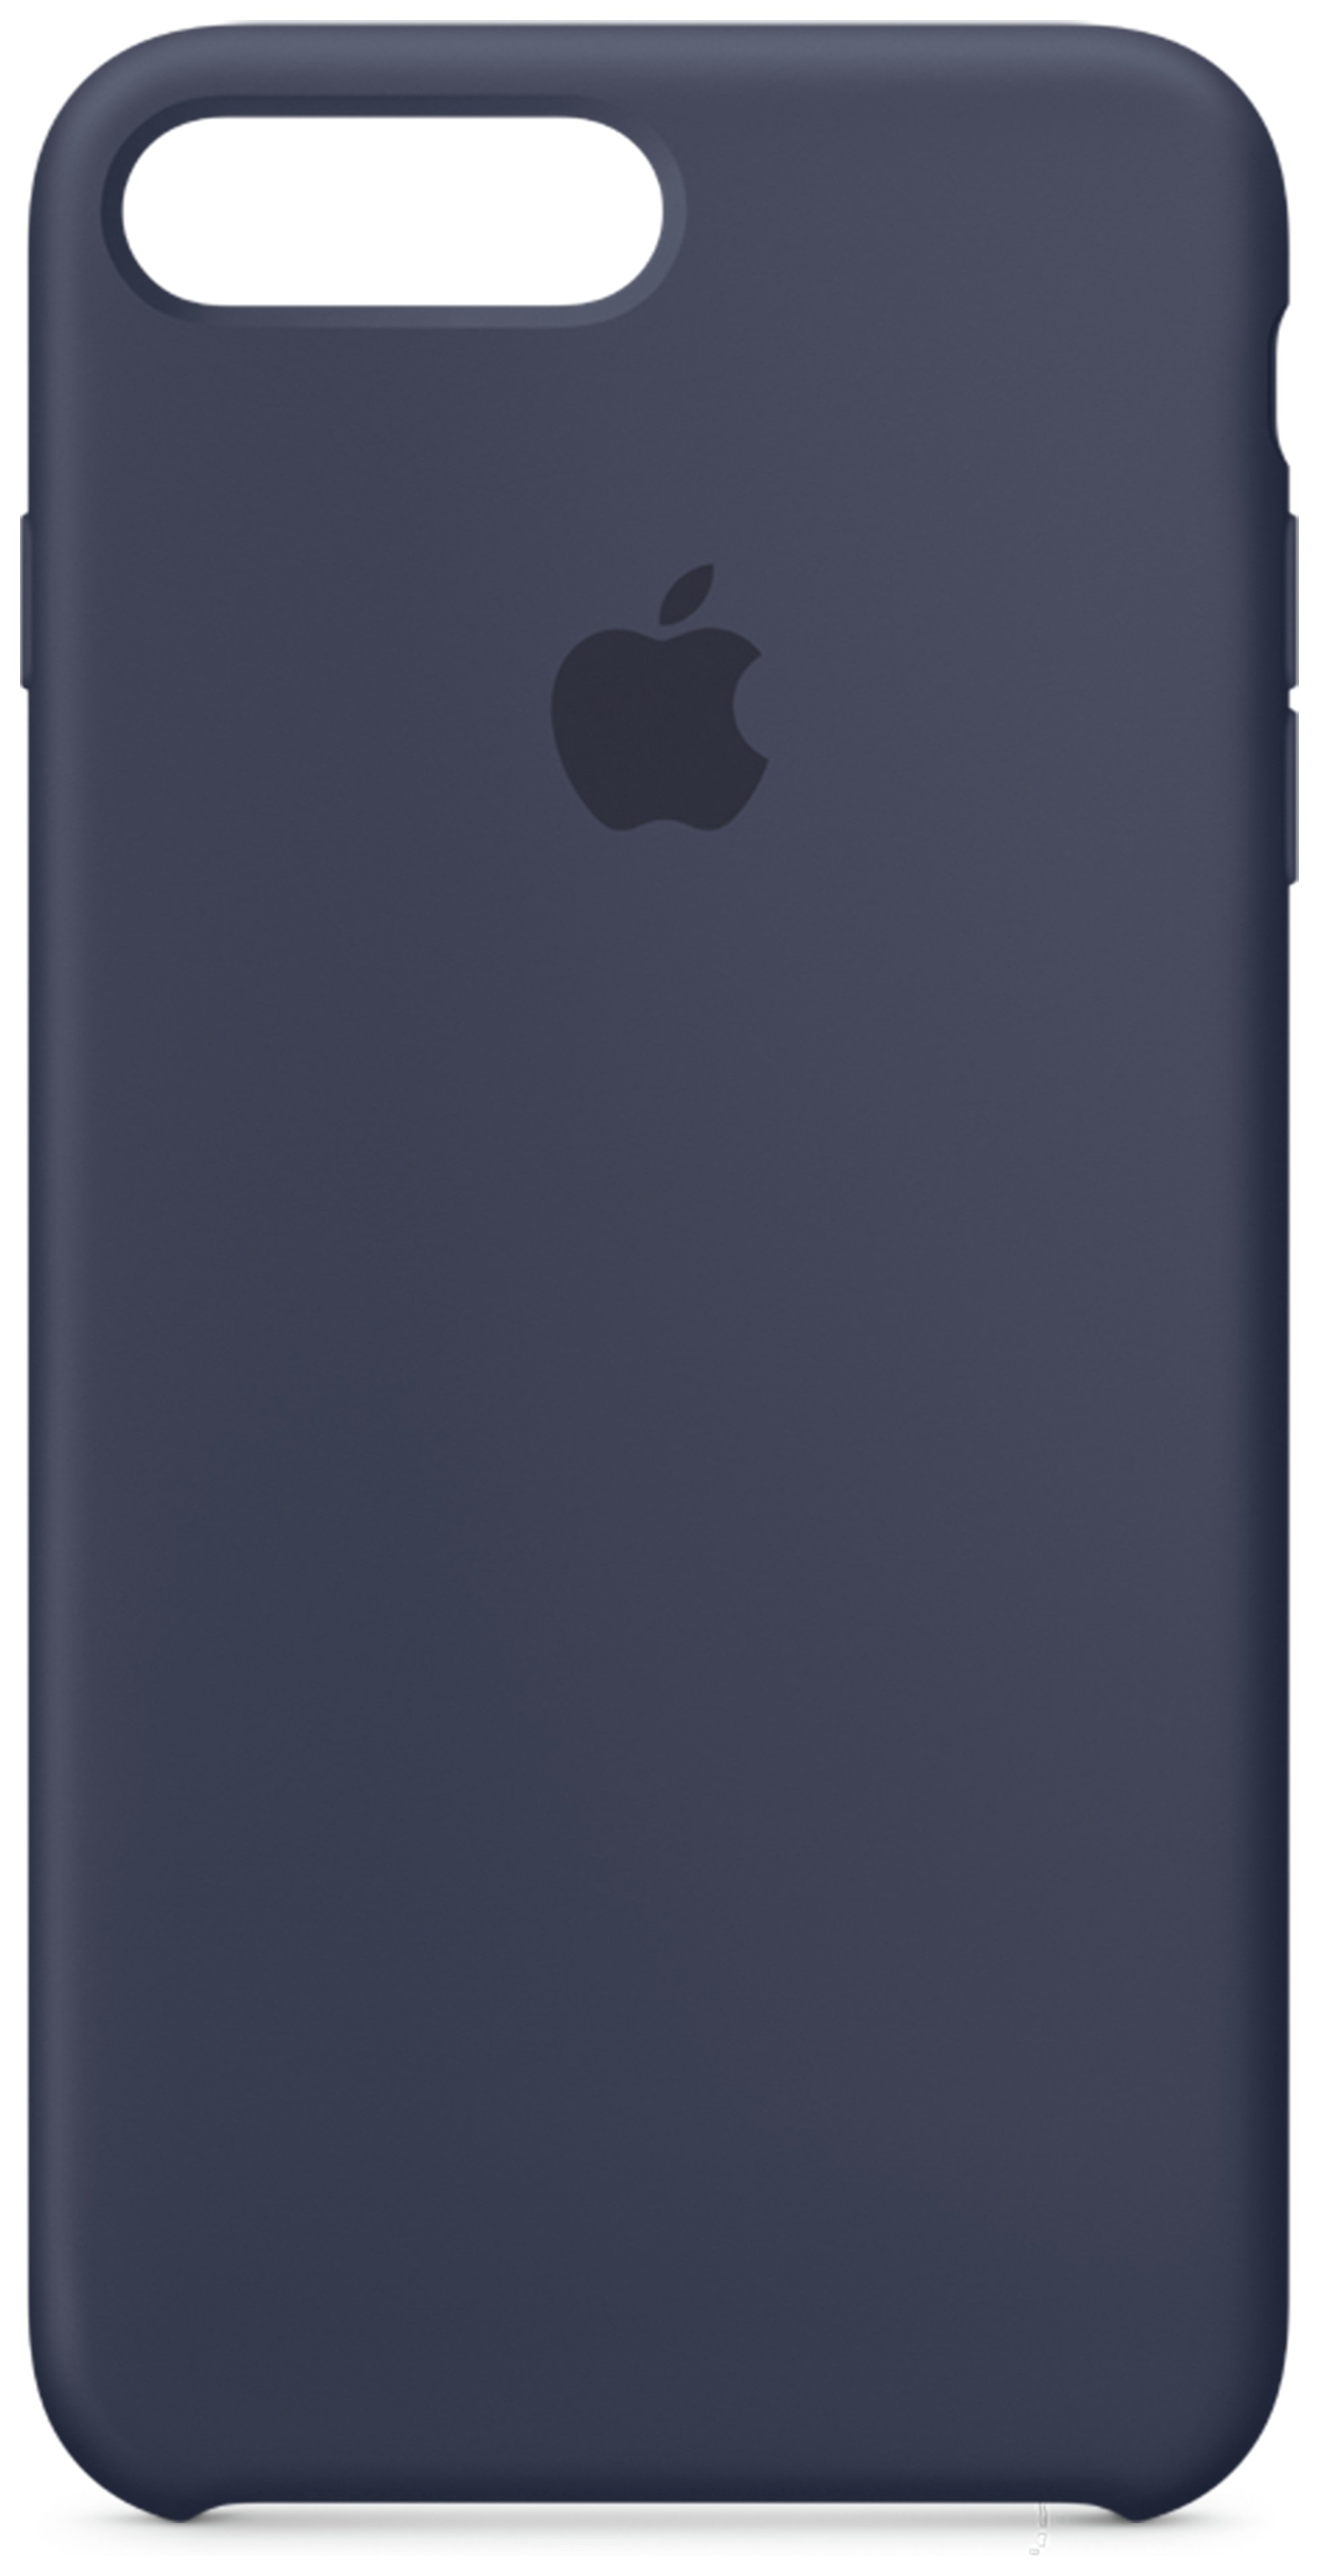 Image of Apple - for - iPhone - 7 Plus - Silicone - Case - Midnight Blue